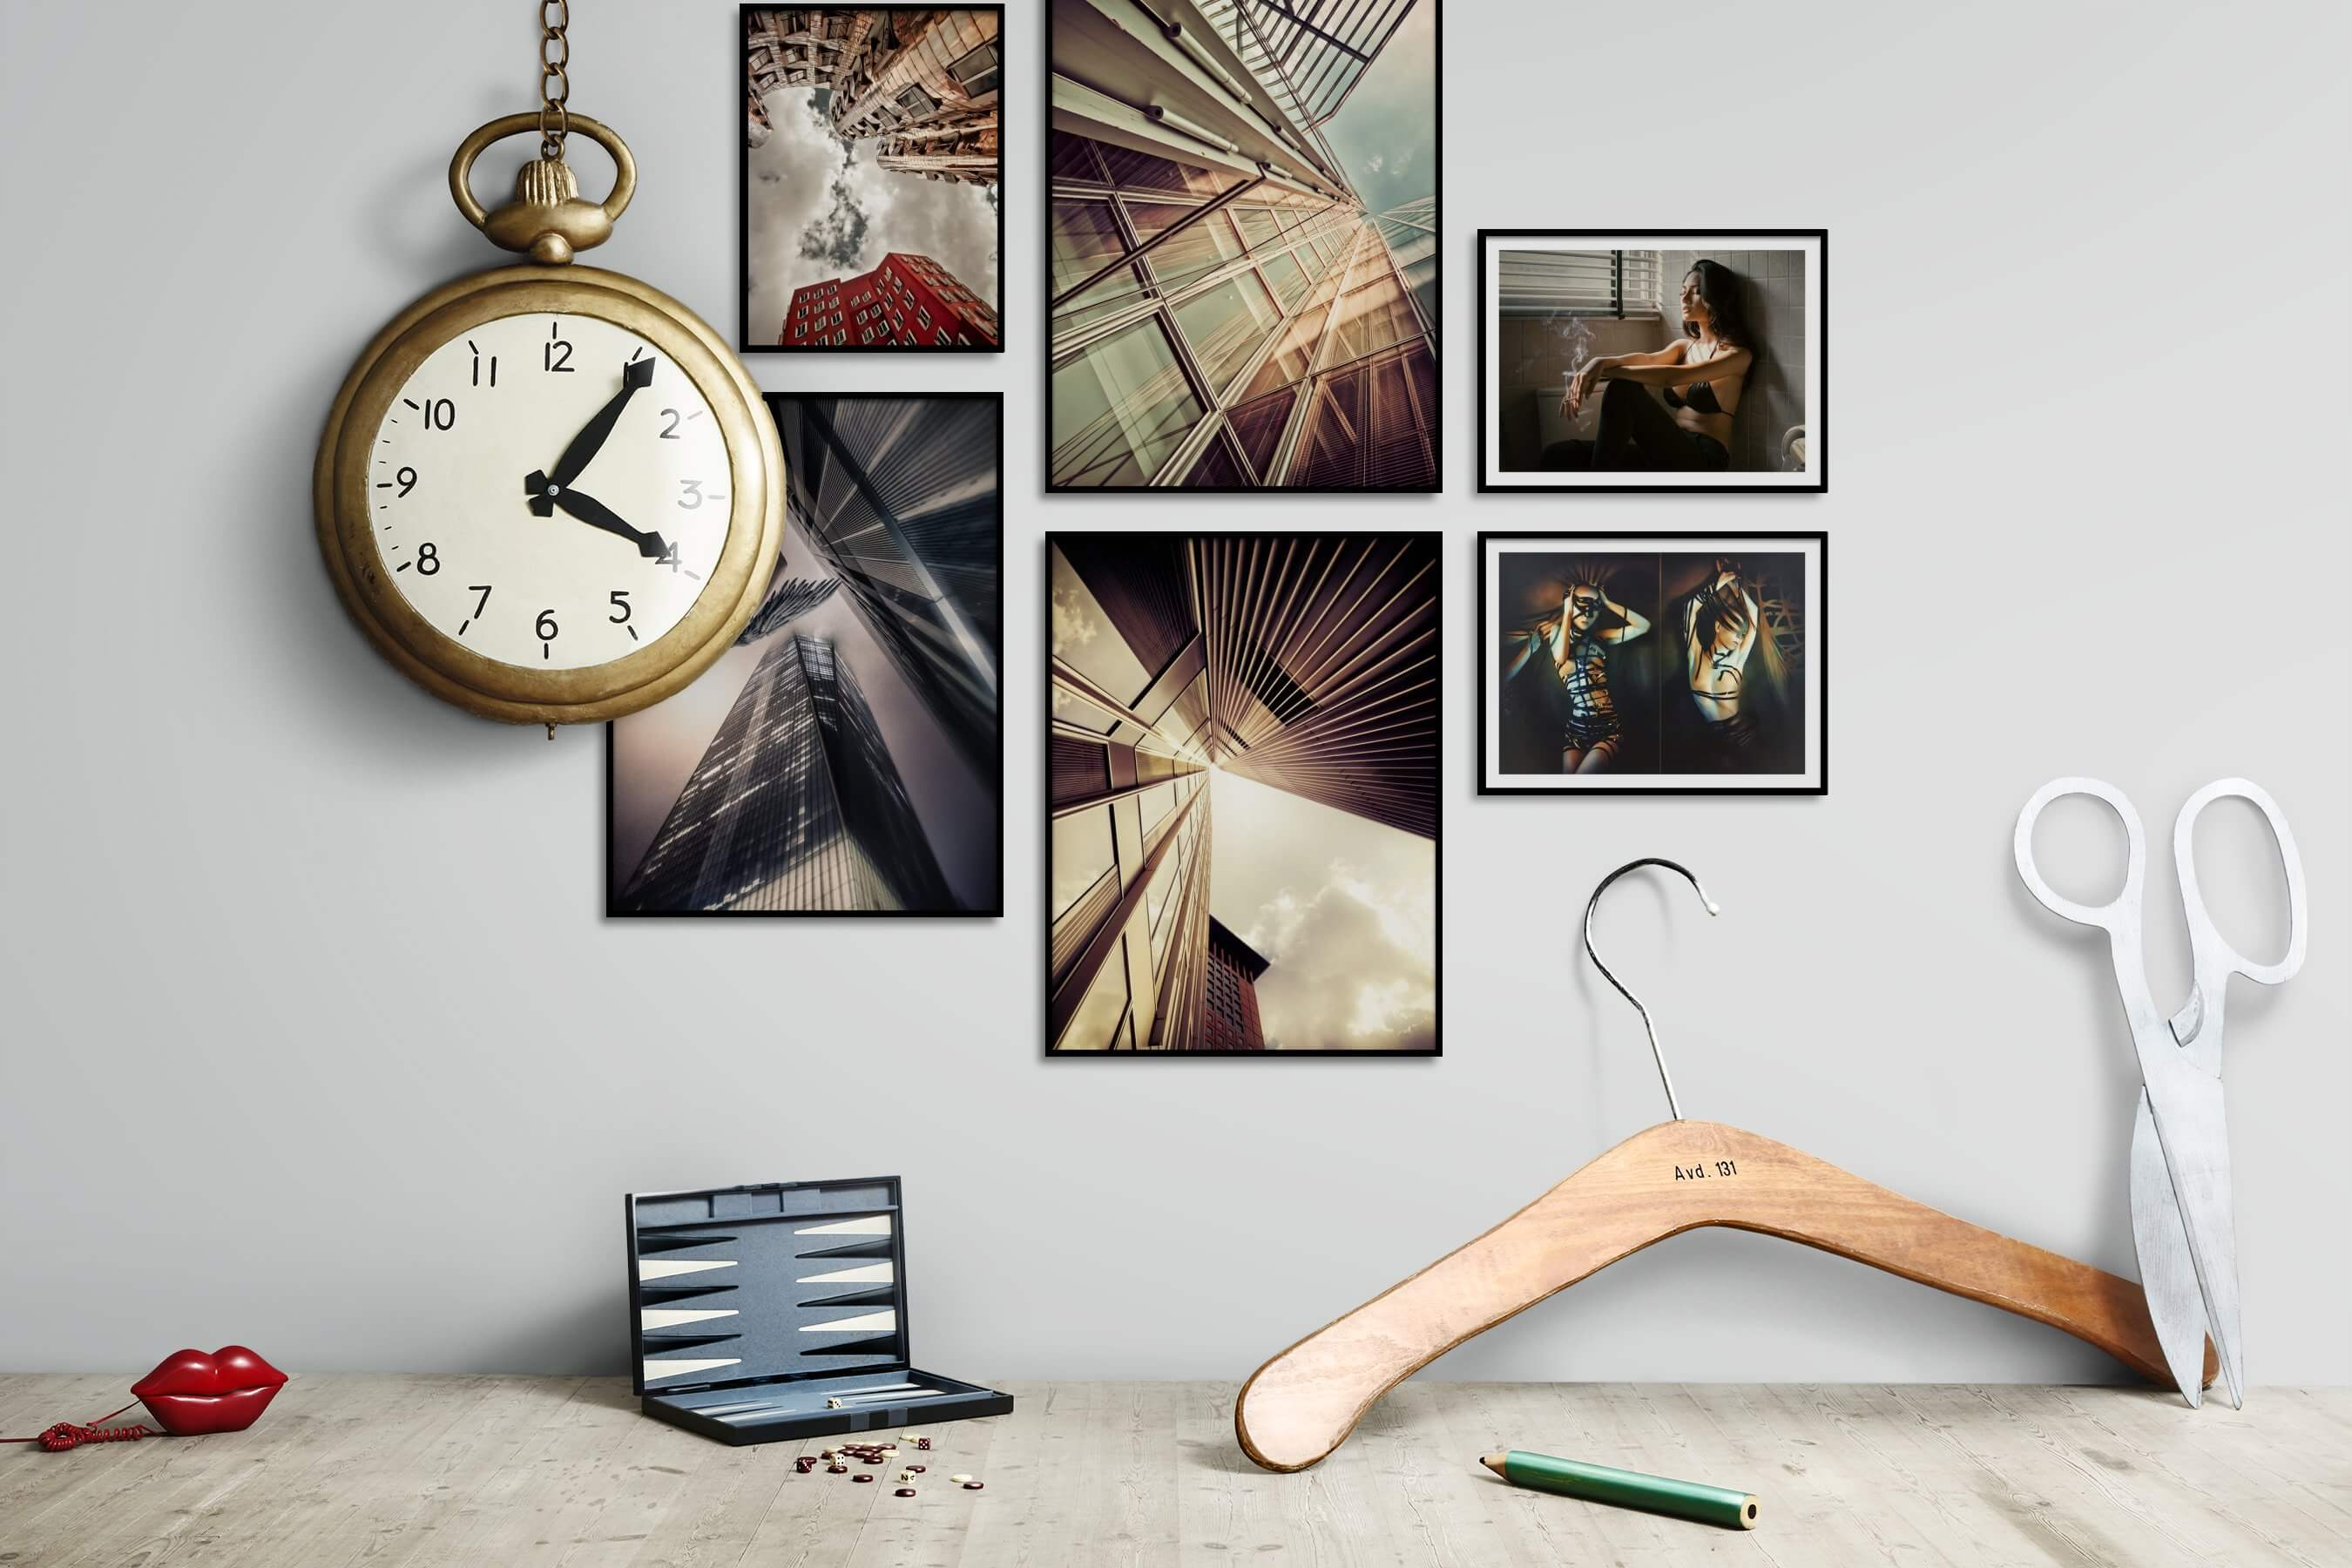 Gallery wall idea with six framed pictures arranged on a wall depicting For the Moderate, City Life, For the Maximalist, Artsy, and Fashion & Beauty